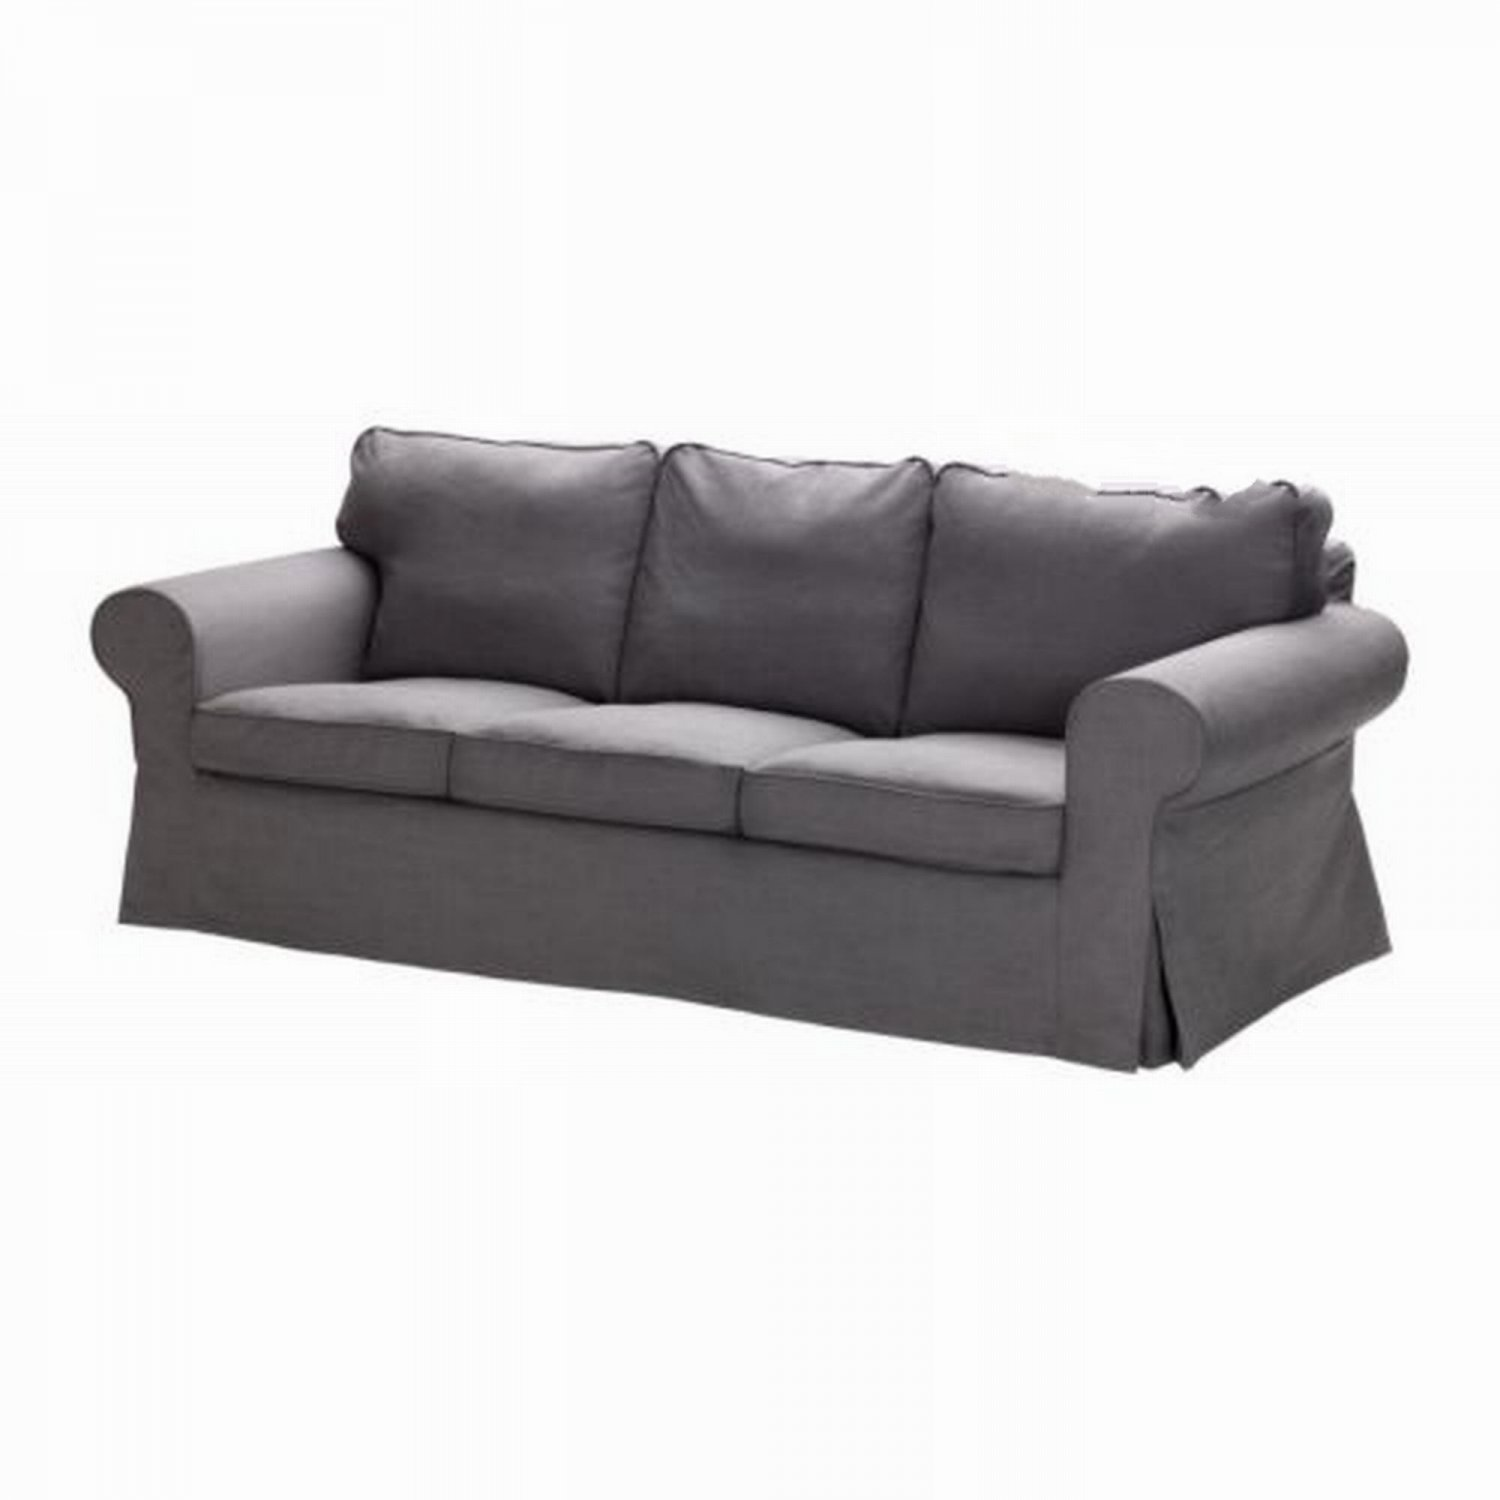 Ikea ektorp 3 seat sofa slipcover cover svanby gray grey for Ikea divan